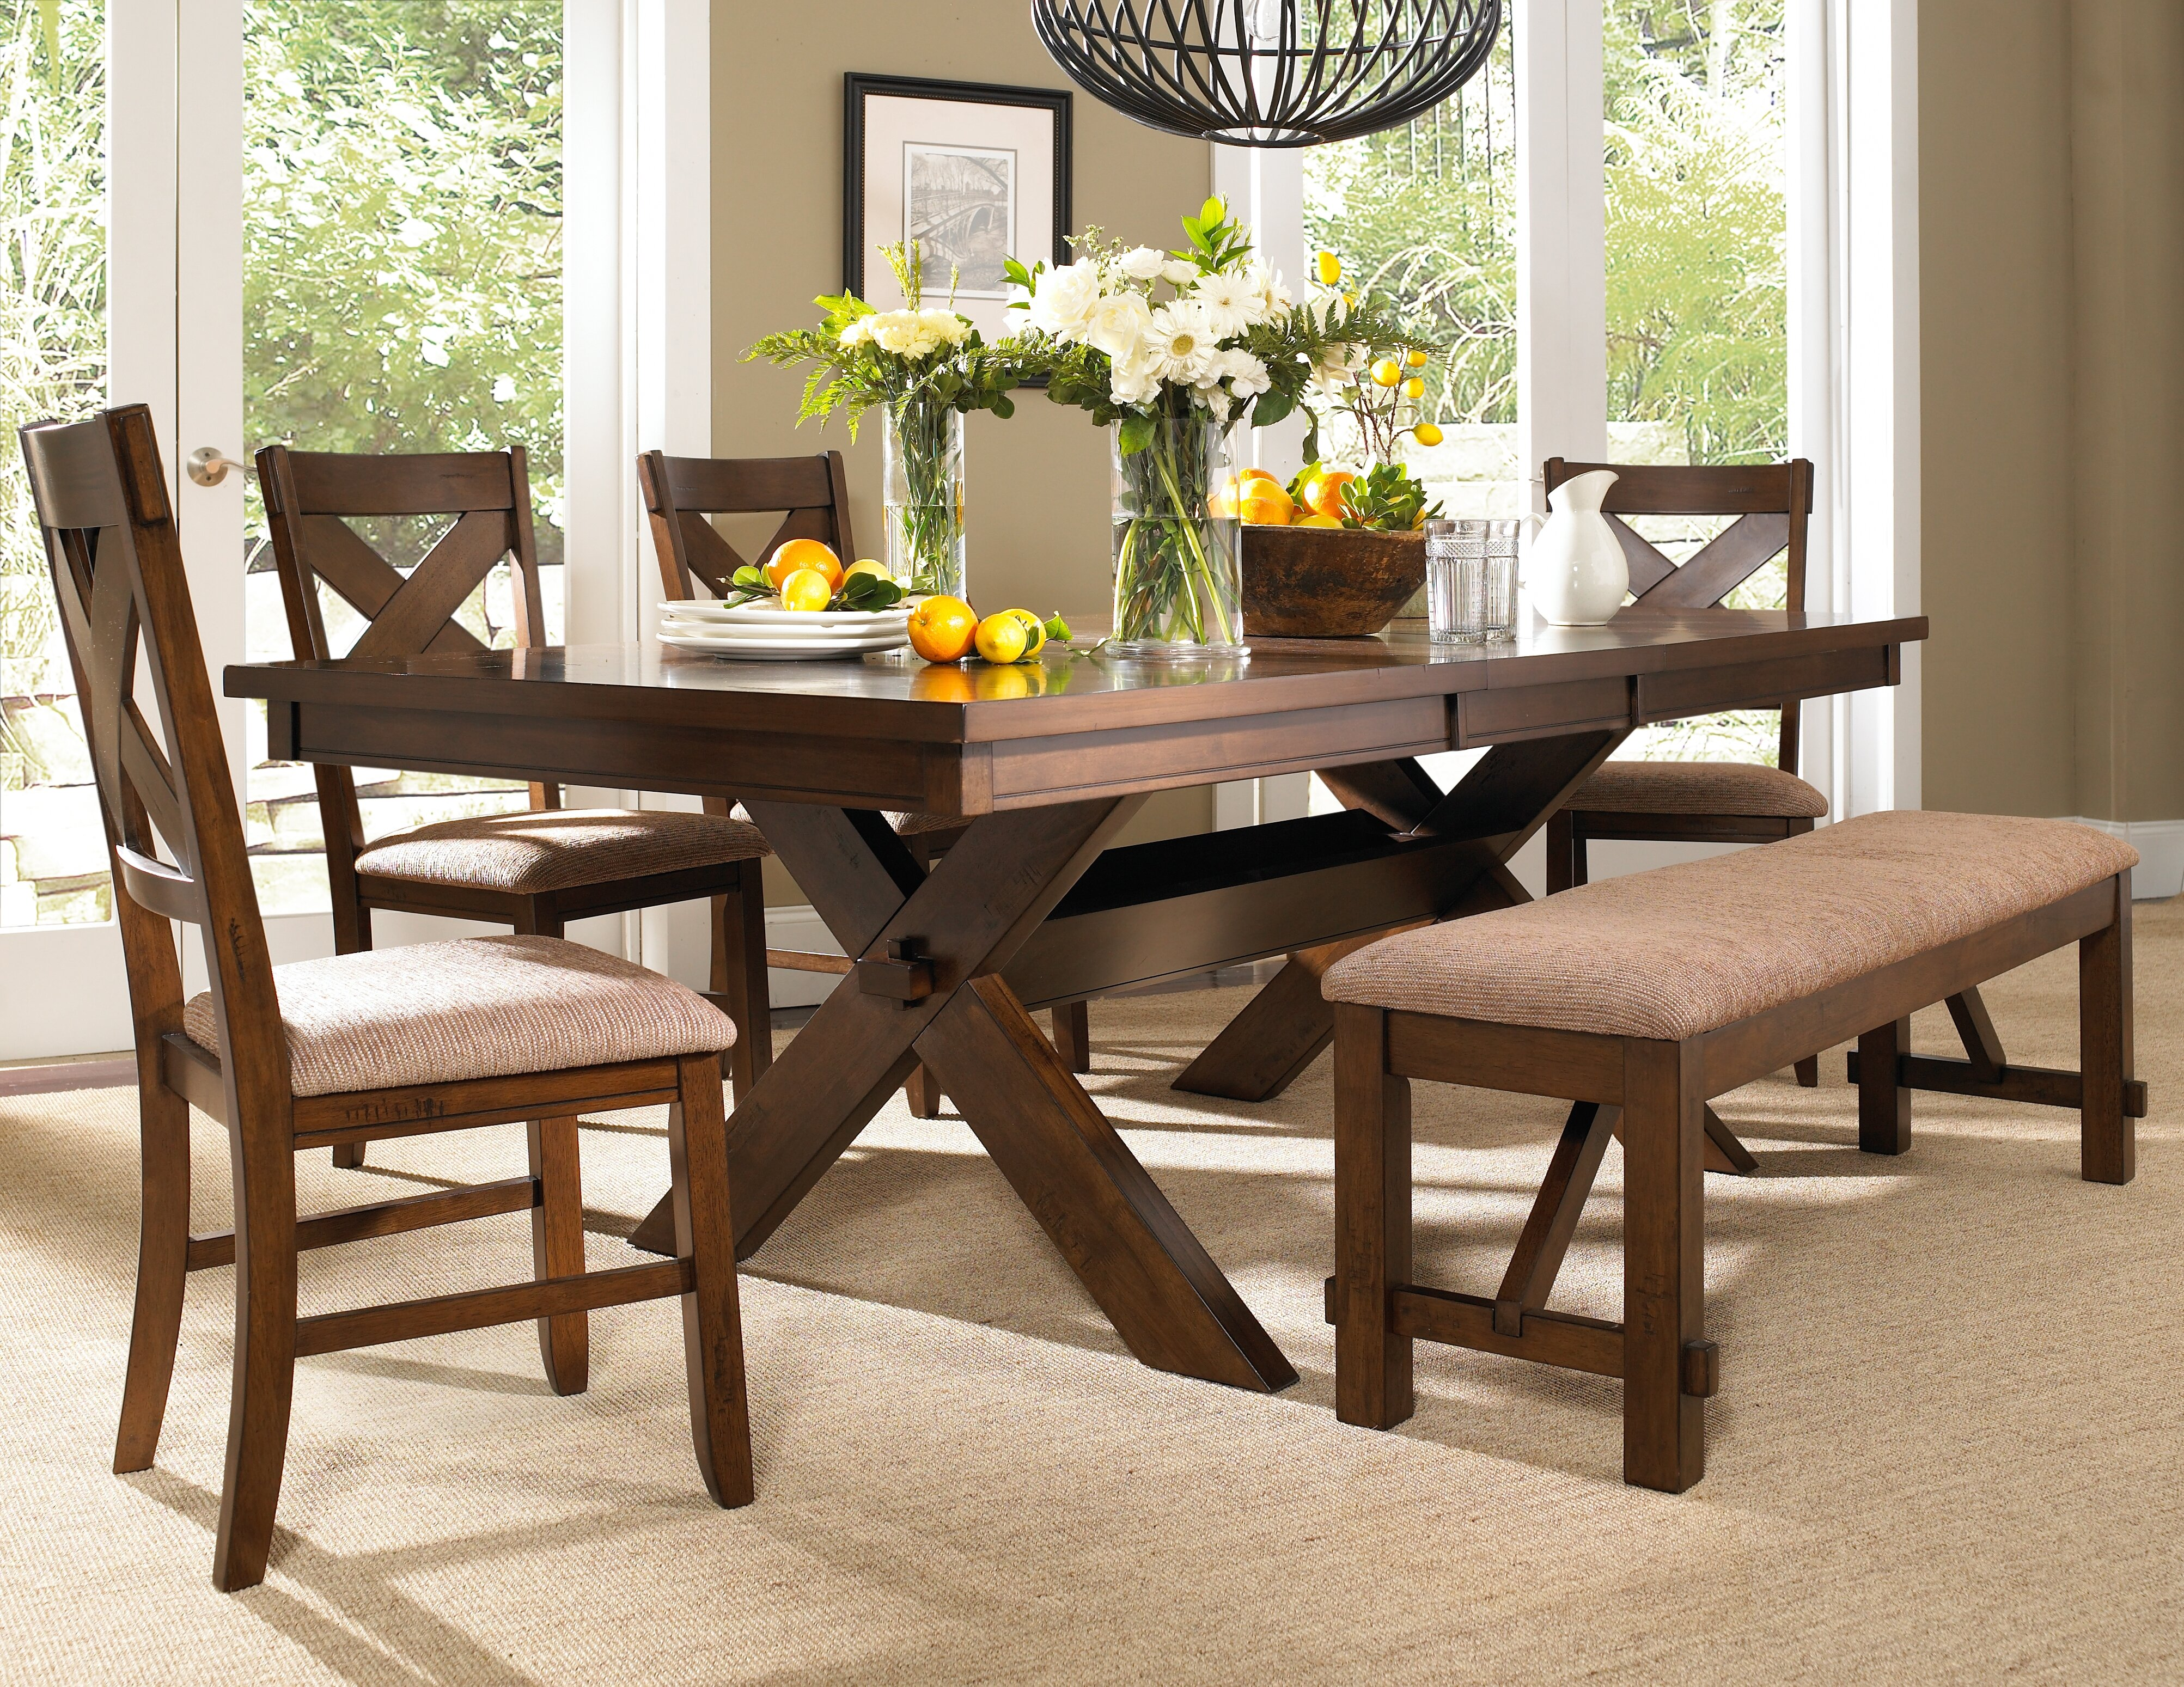 Laurel Foundry Modern Farmhouse Isabell 6 Piece Dining Set